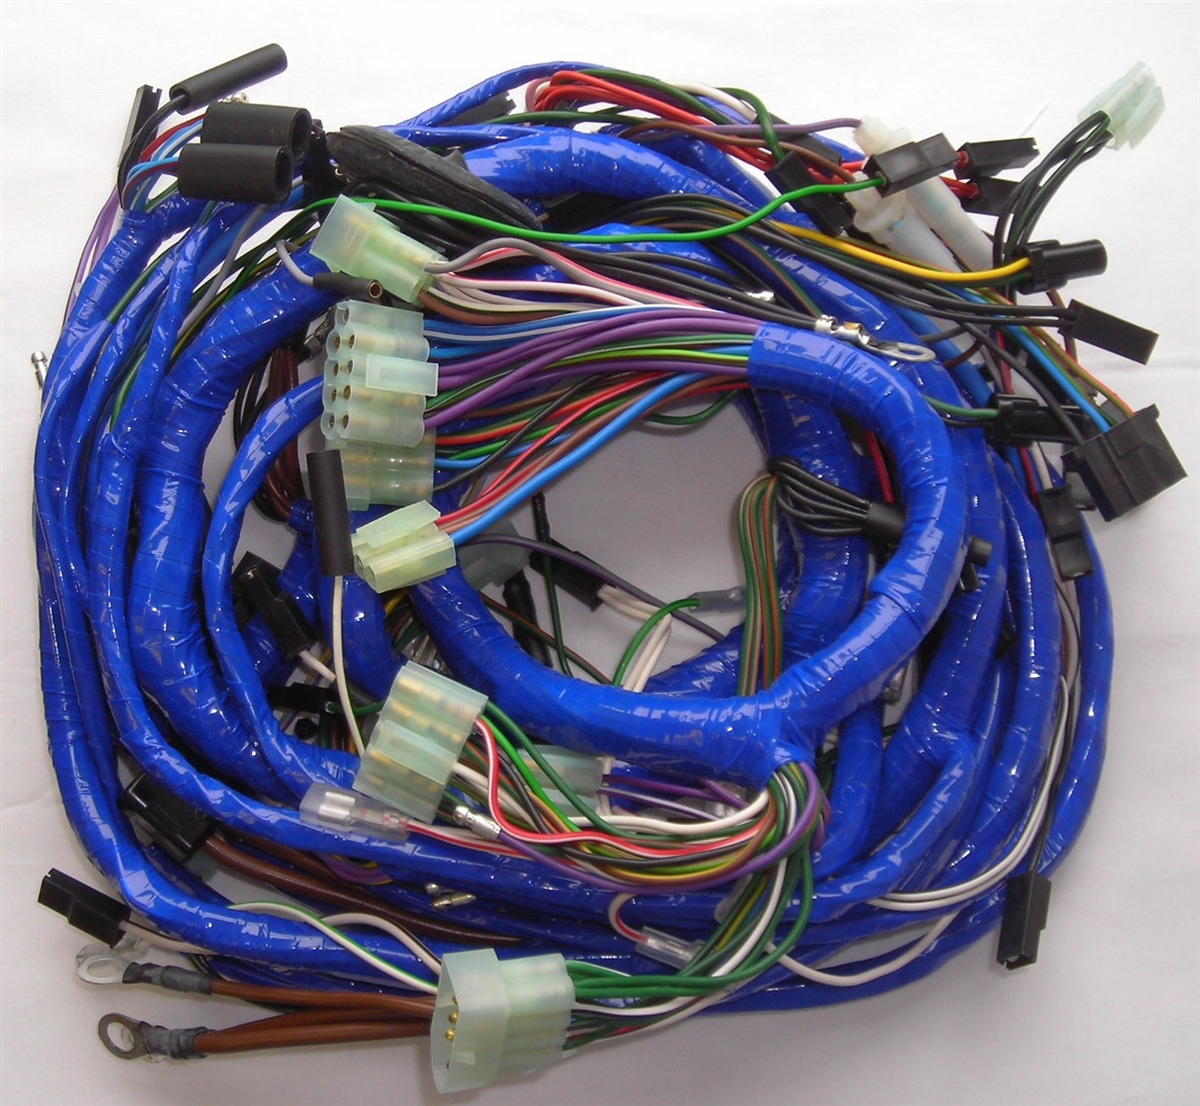 Mgb 1978 79 Main Wiring Harness (520) 1979 MGB Wiring Harness 1978 Mgb  Wiring Harness